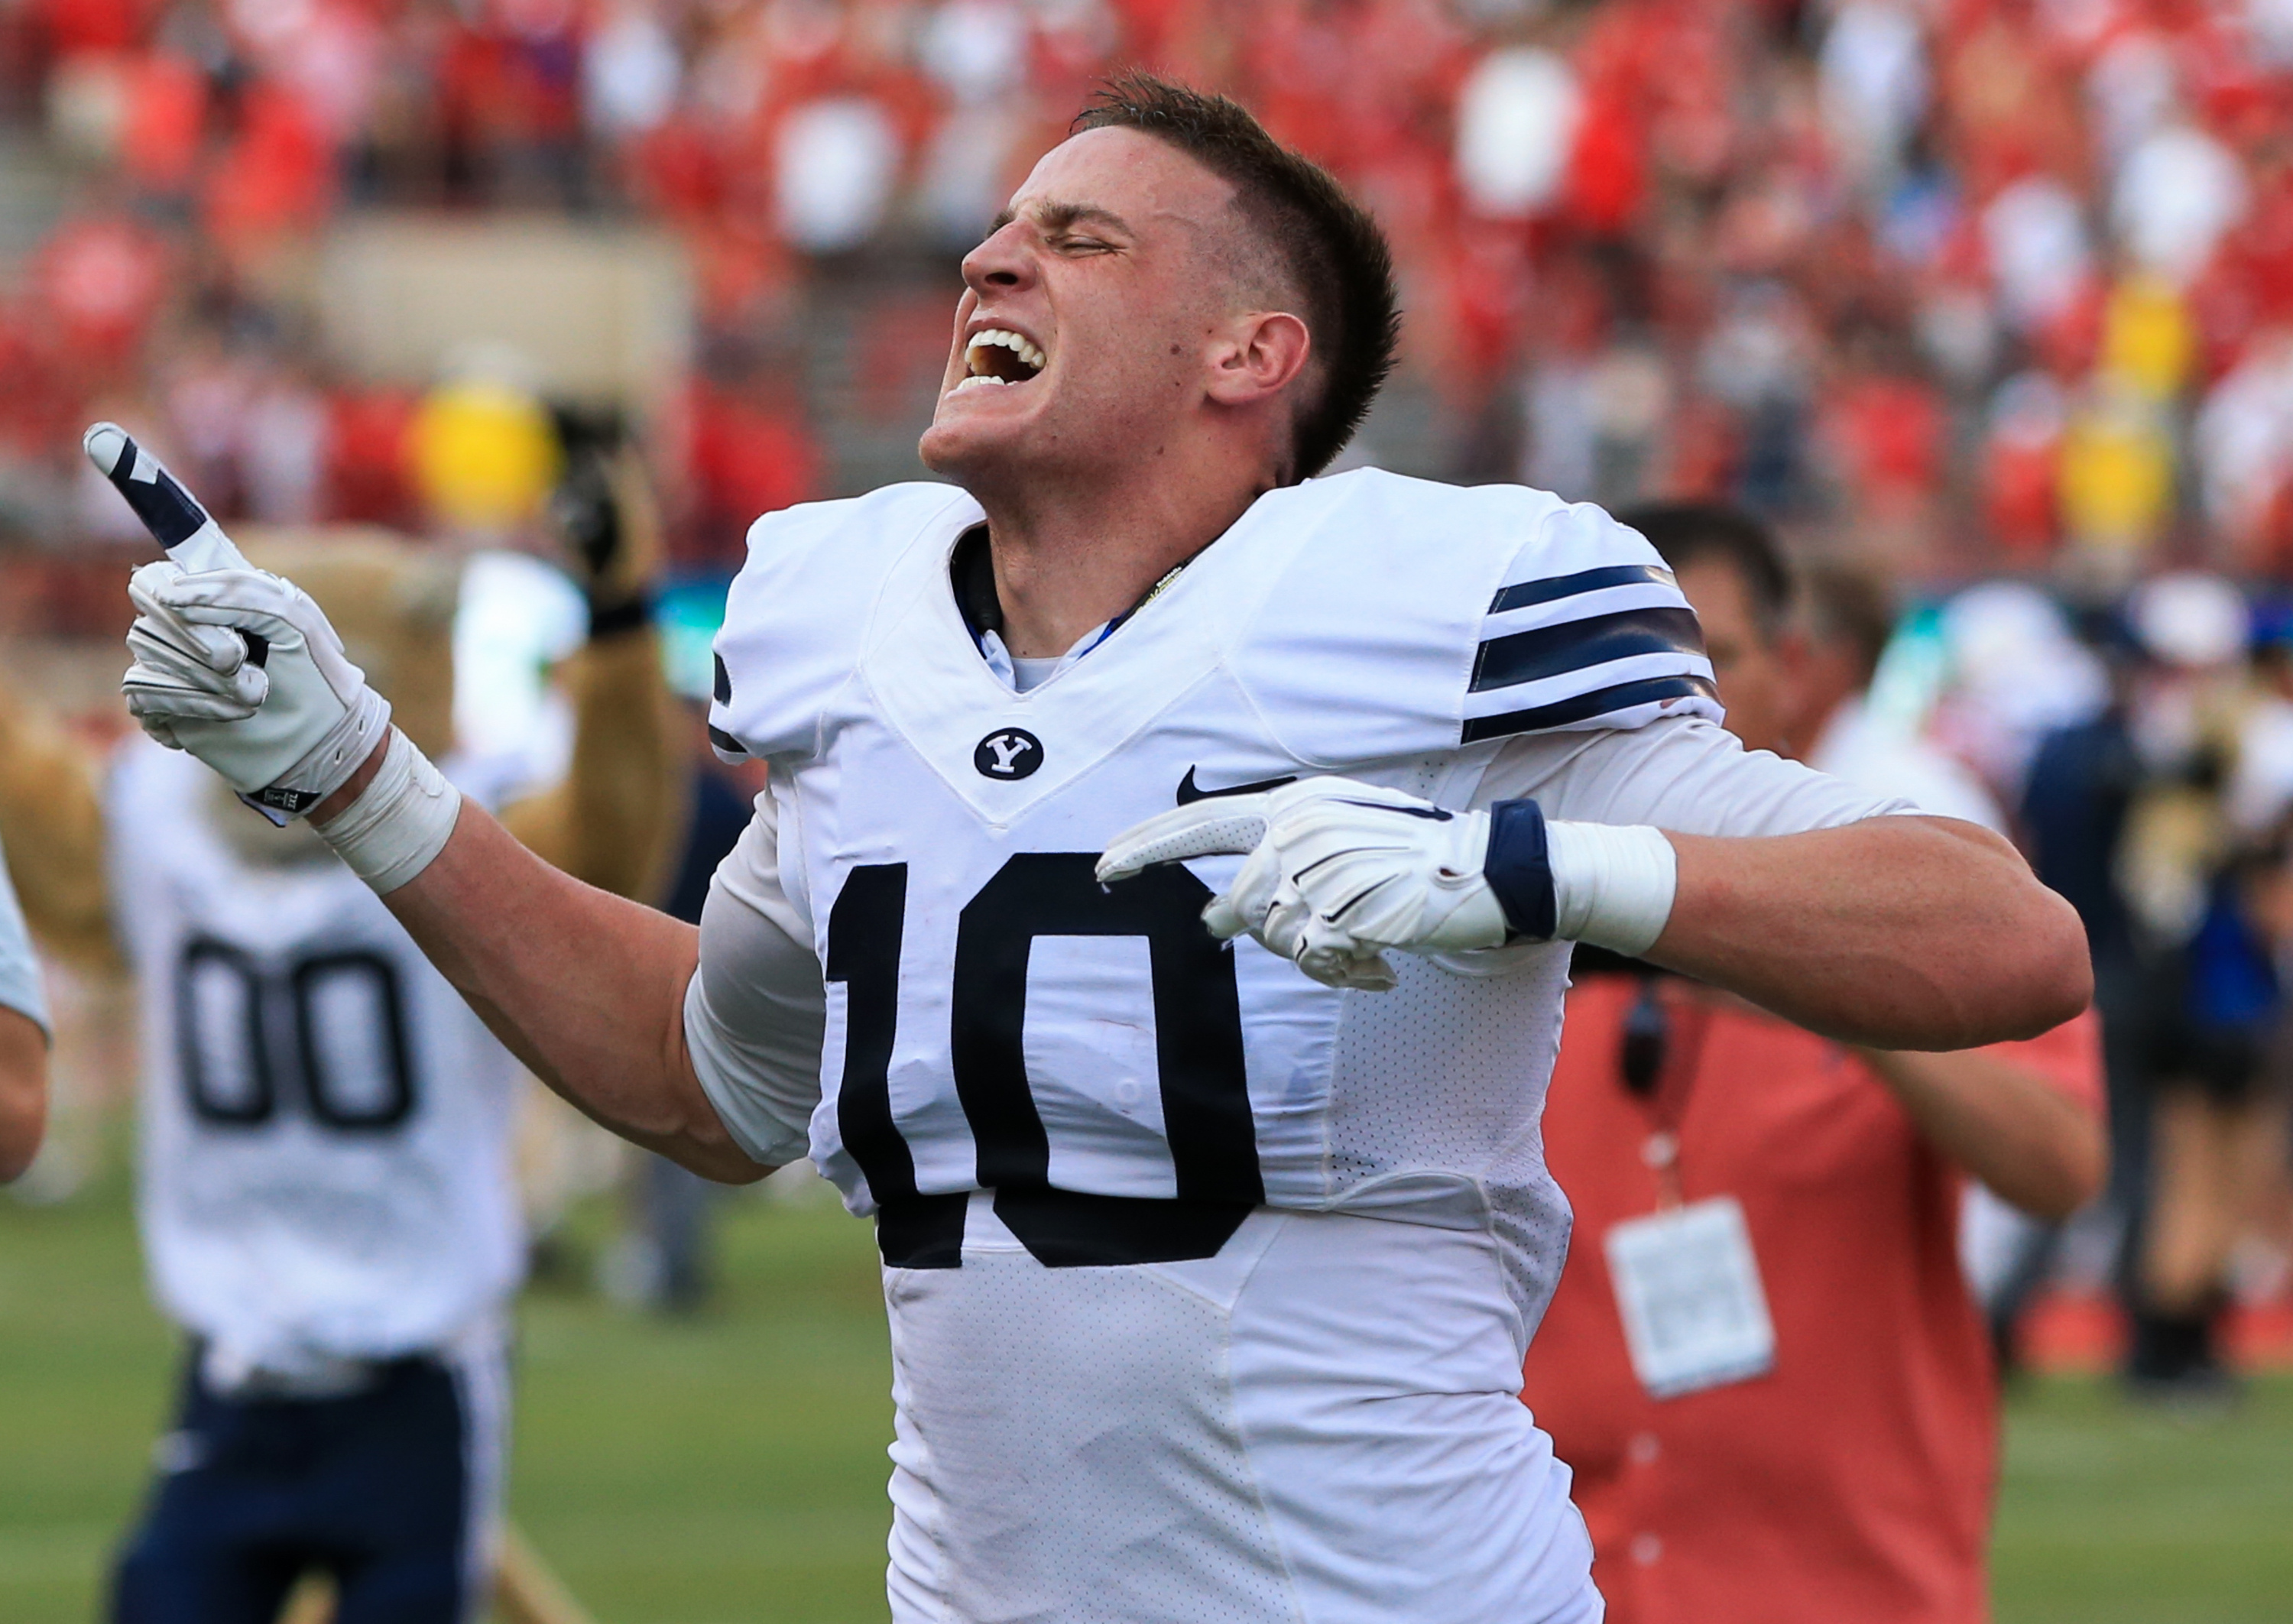 BYU wide receiver Mitch Mathews (10) reacts after catching the game-winning touchdown against Nebraska following the second half of an NCAA college football game in Lincoln, Neb., Saturday, Sept. 5, 2015. BYU won 33-28. (AP Photo/Nati Harnik)